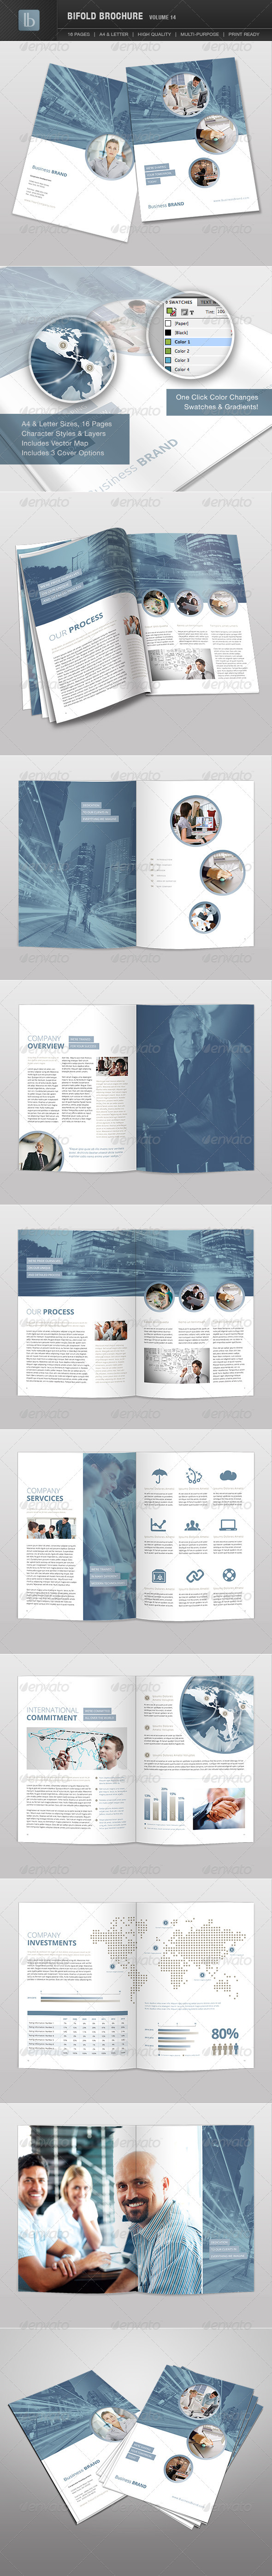 Bifold Brochure | Volume 14 - Brochures Print Templates